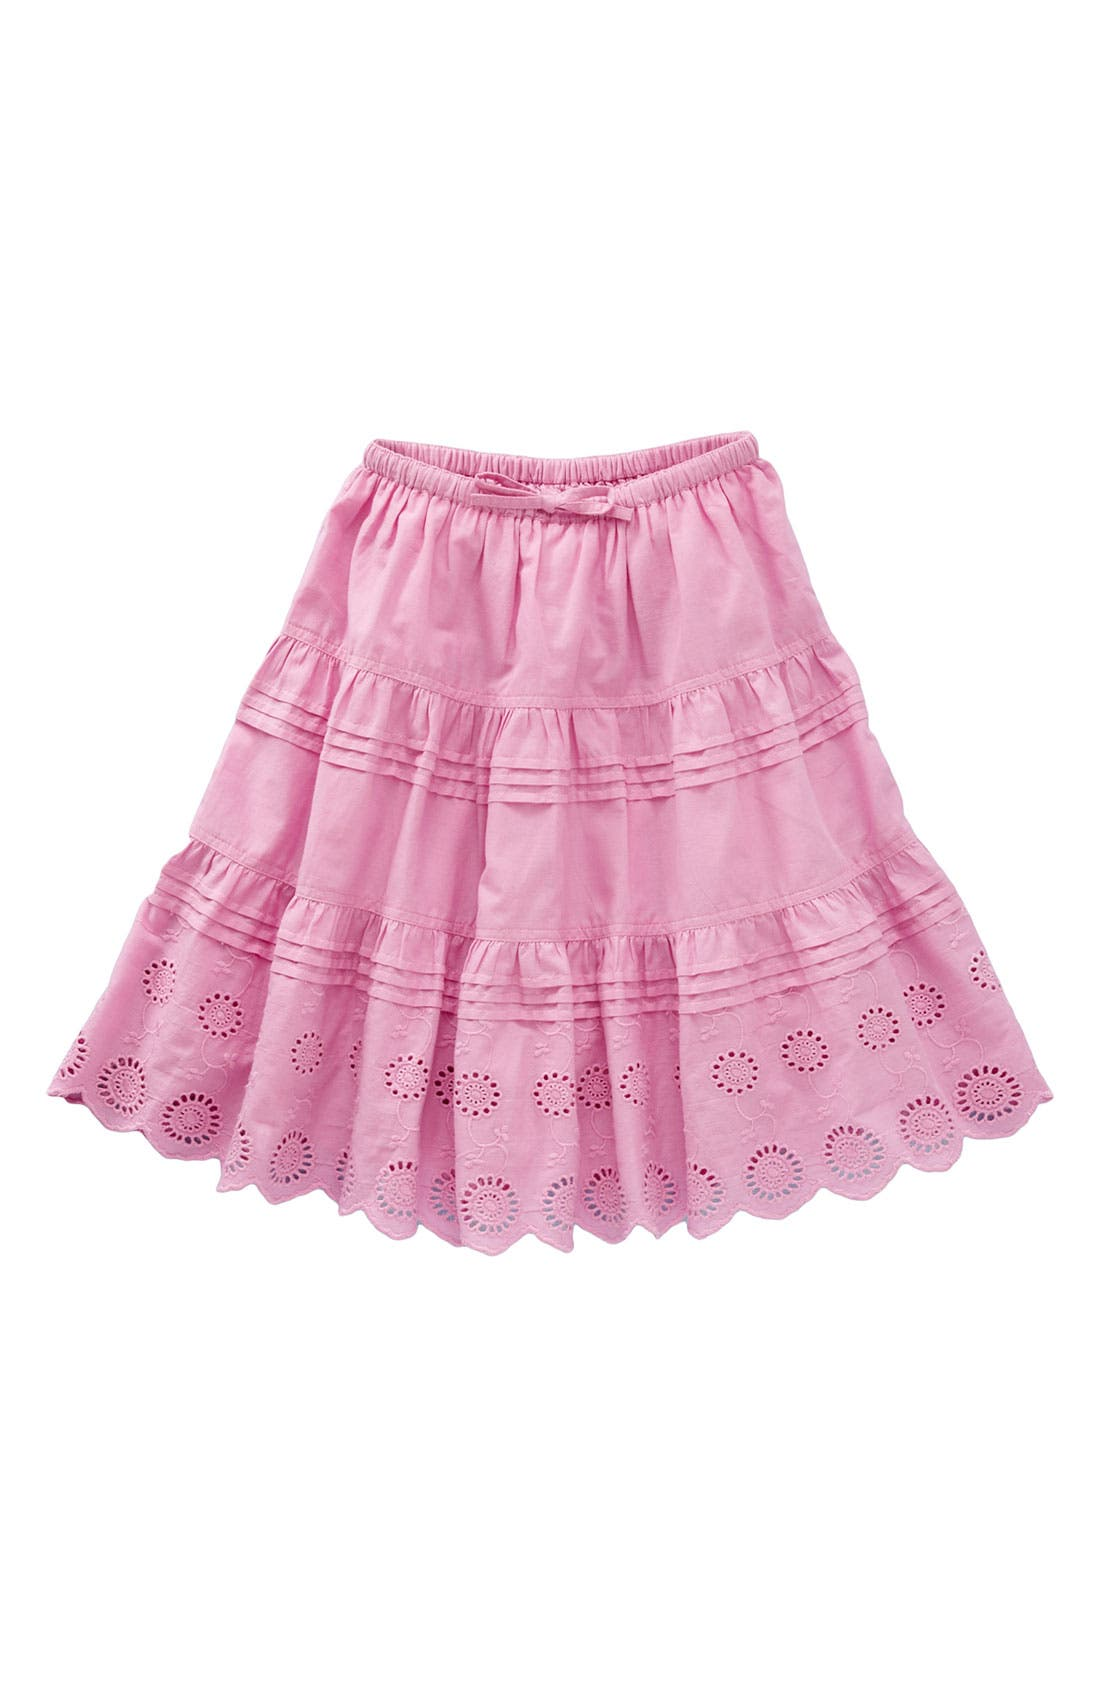 Alternate Image 1 Selected - Mini Boden 'Broiderie Twirly' Skirt (Little Girl & Big Girl)